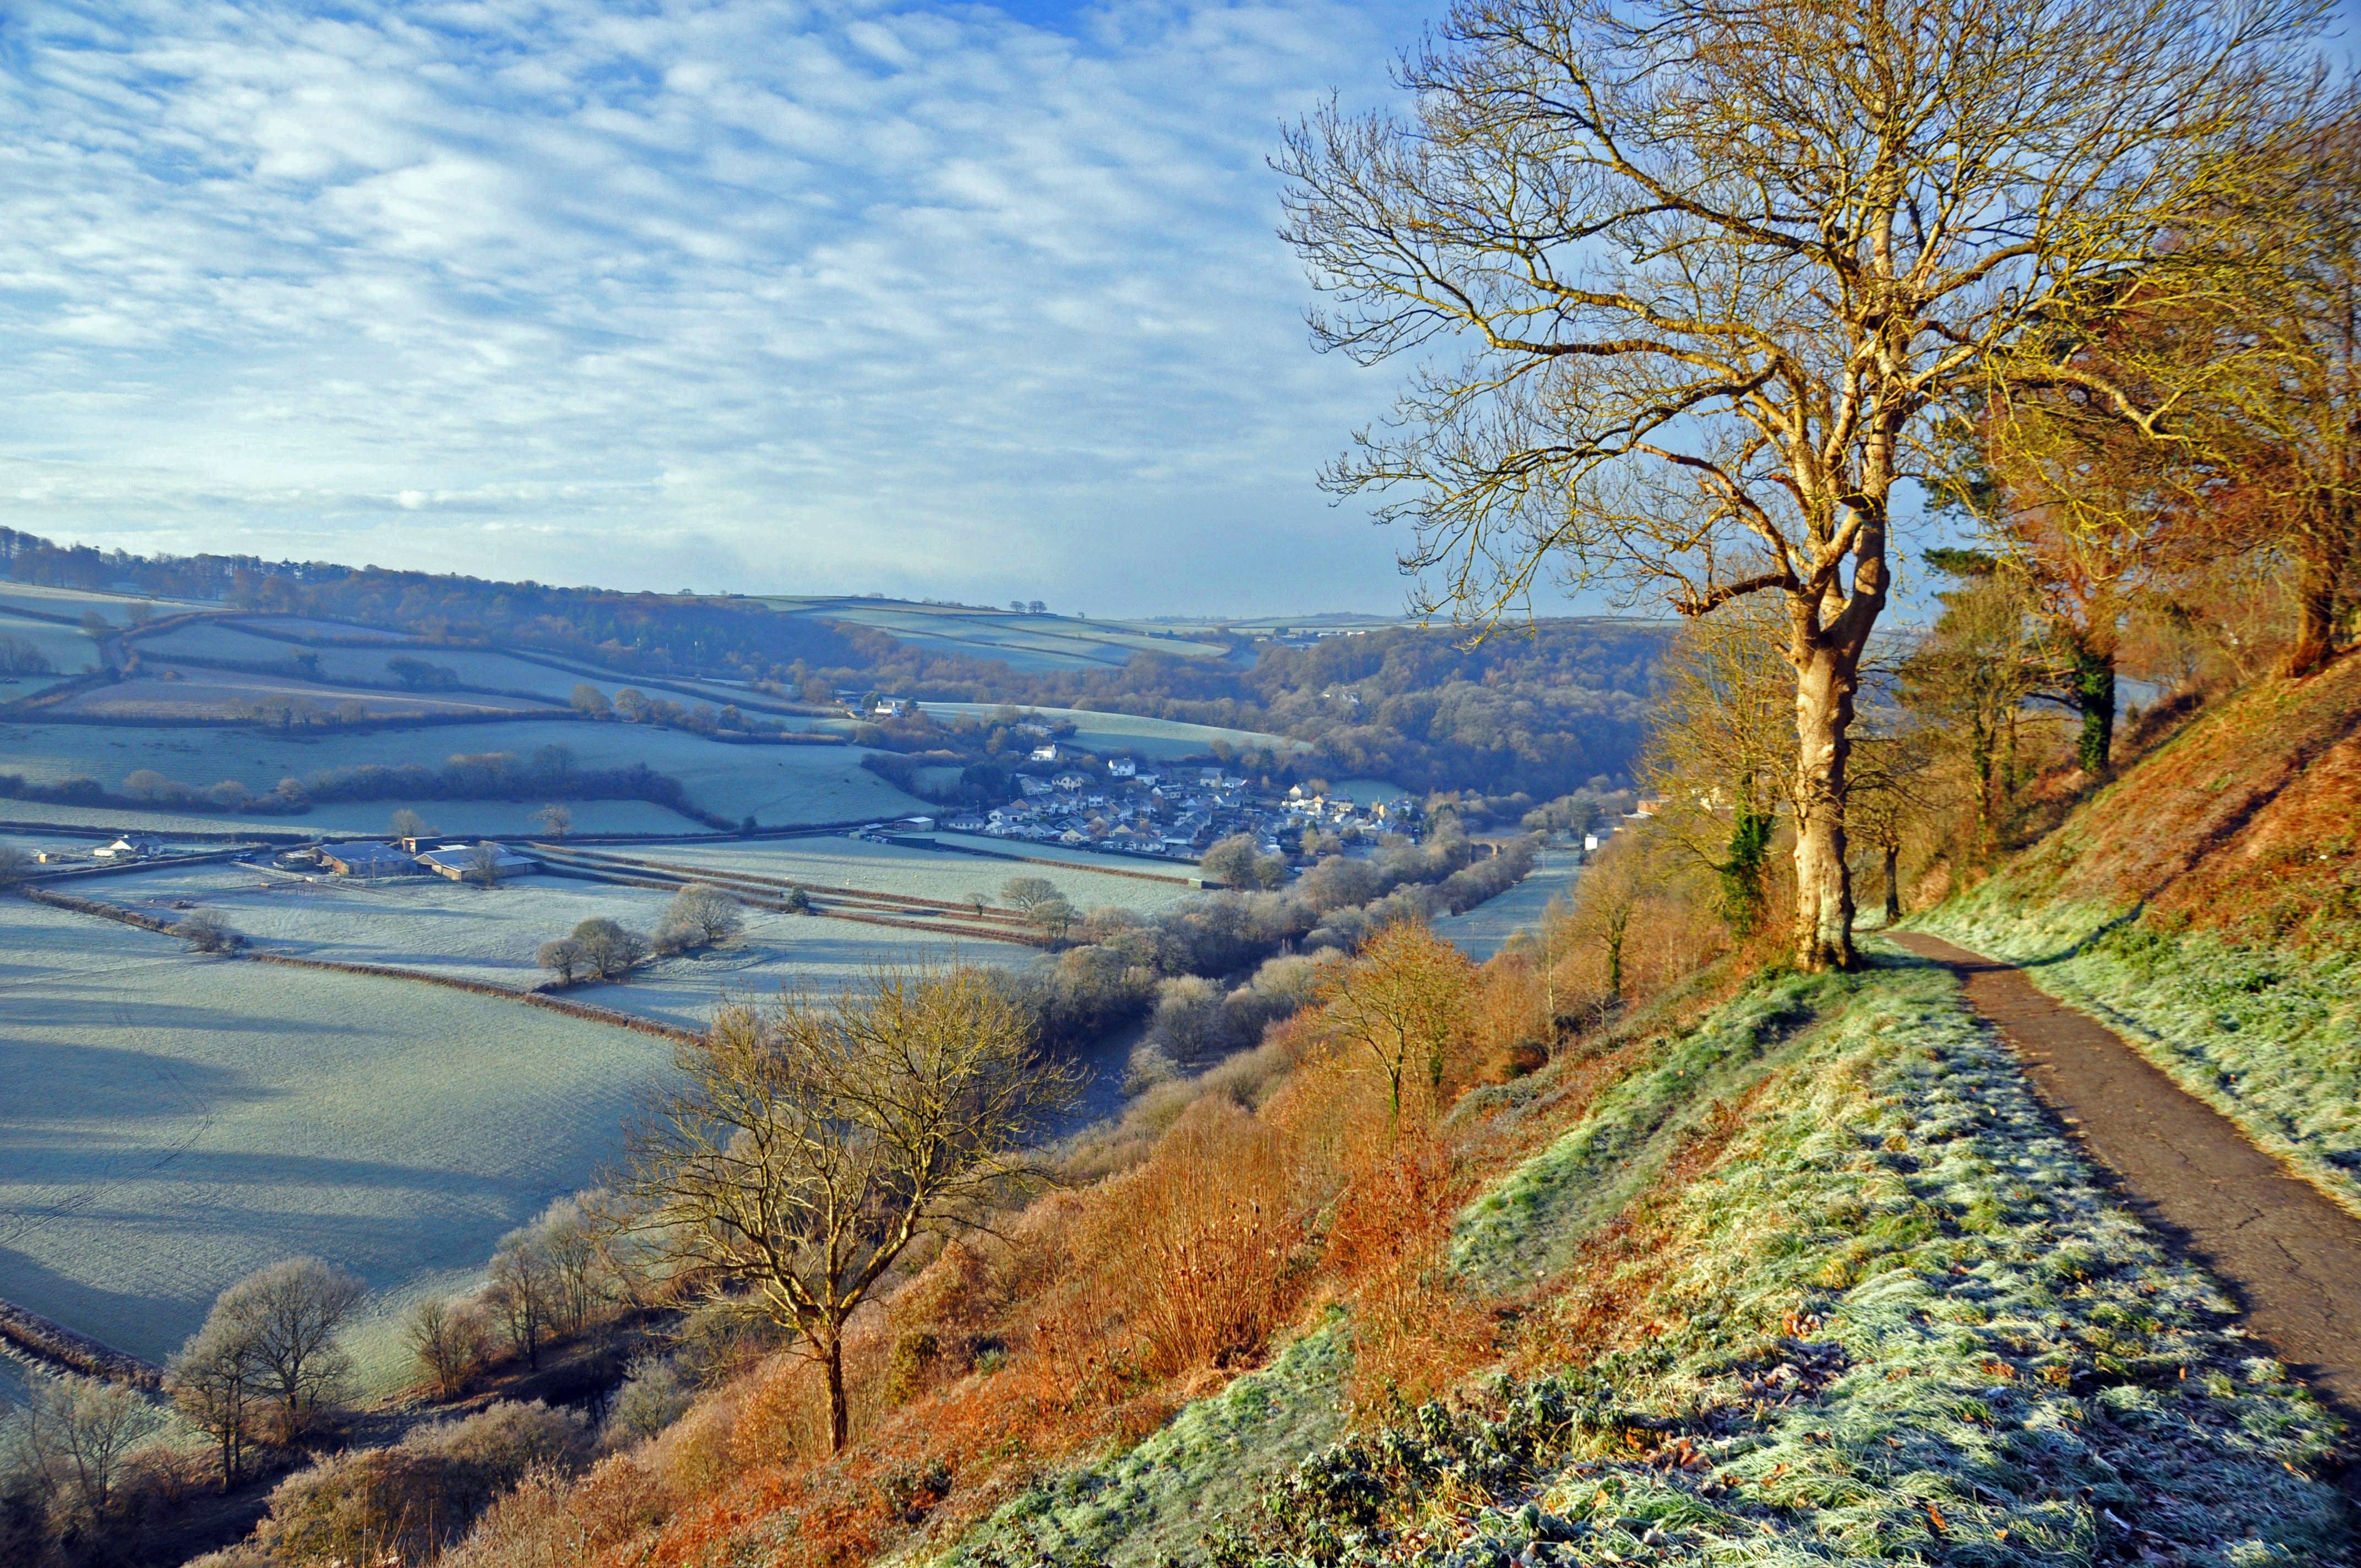 25cc644d9f3 What other areas in Britain would you recommend for cycling? A view from  Castle Hill, Torrington, in North Devon (Thinkstock/PA)